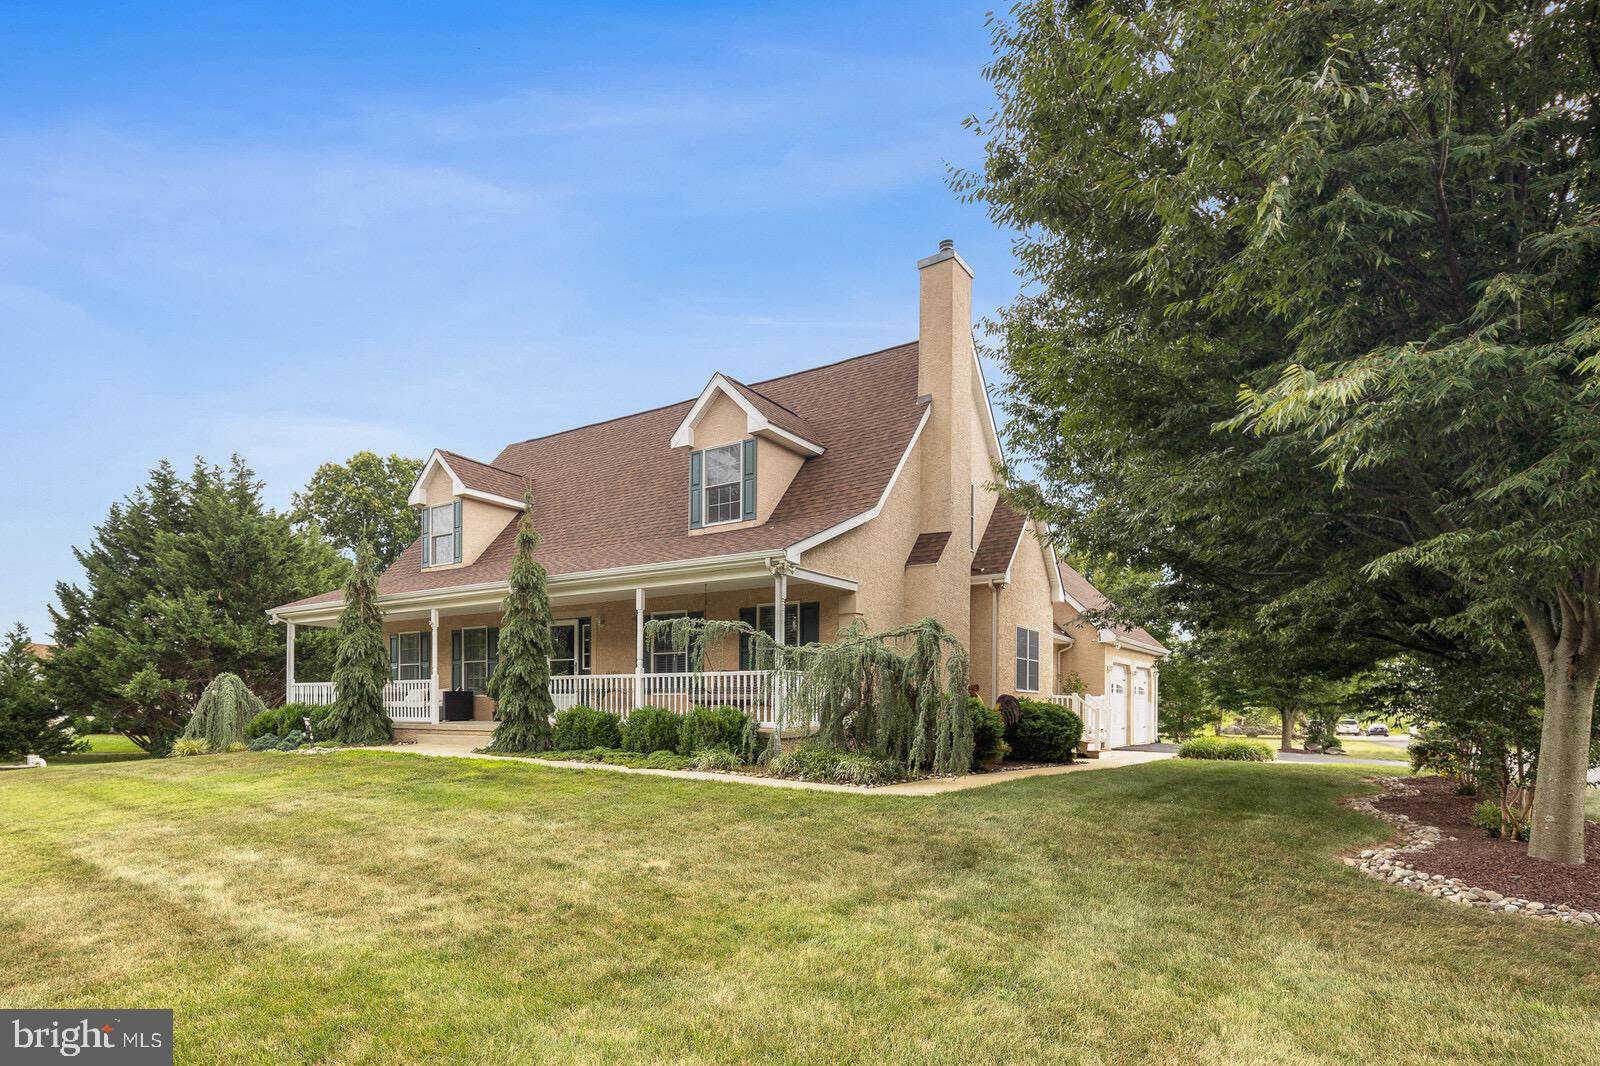 Breathtaking 5 BR, 4.1 BA home situated on 3 acres in the App School District.   Many features inclu